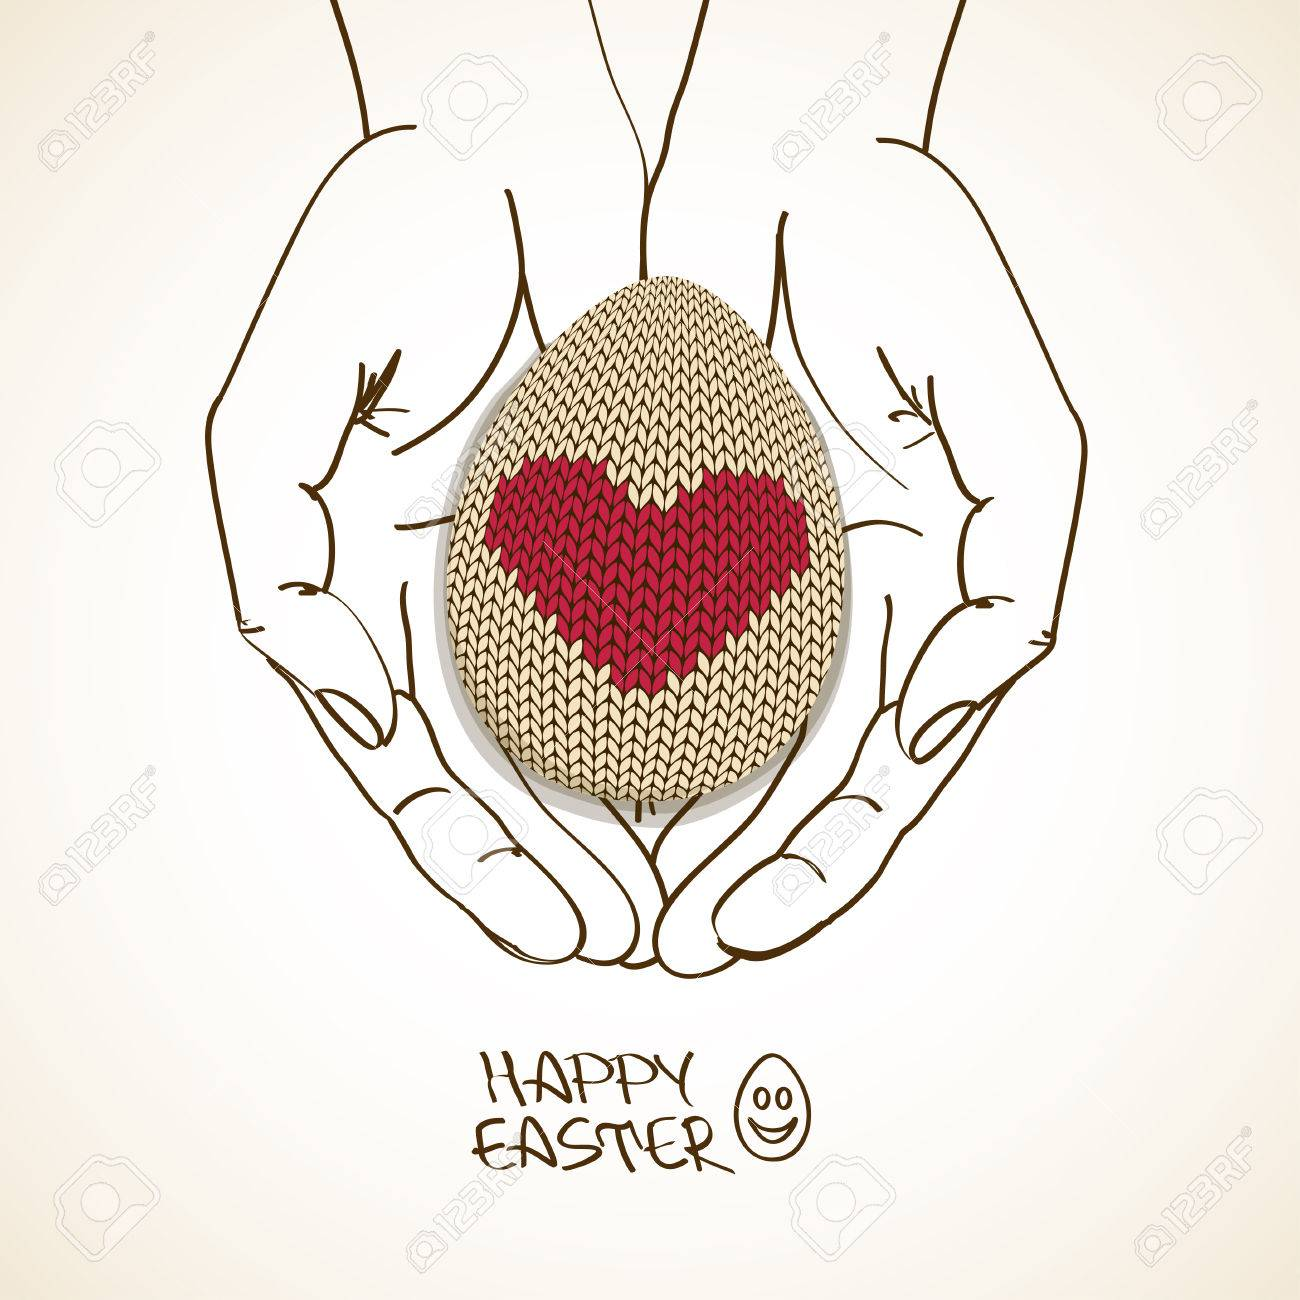 1300x1300 Easter Greeting Card With Sketch Human Hands Holding Volume